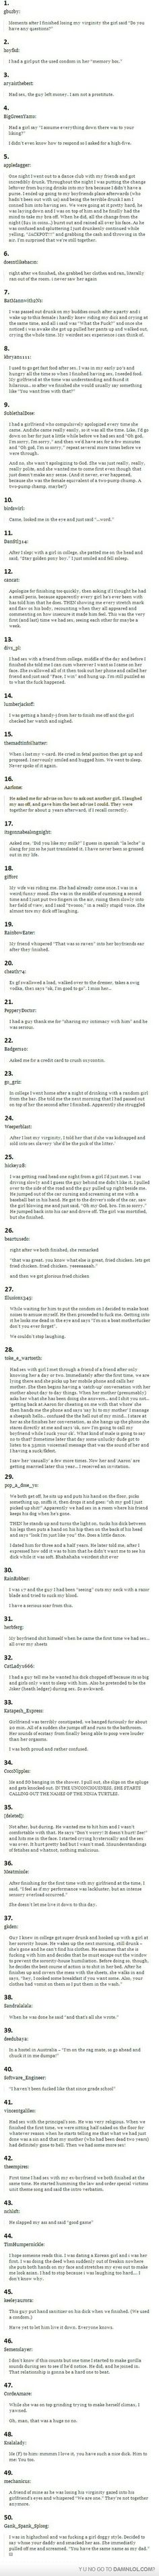 50 Awkward Sexual Experiences...number 18 is probably my favorite omg lol